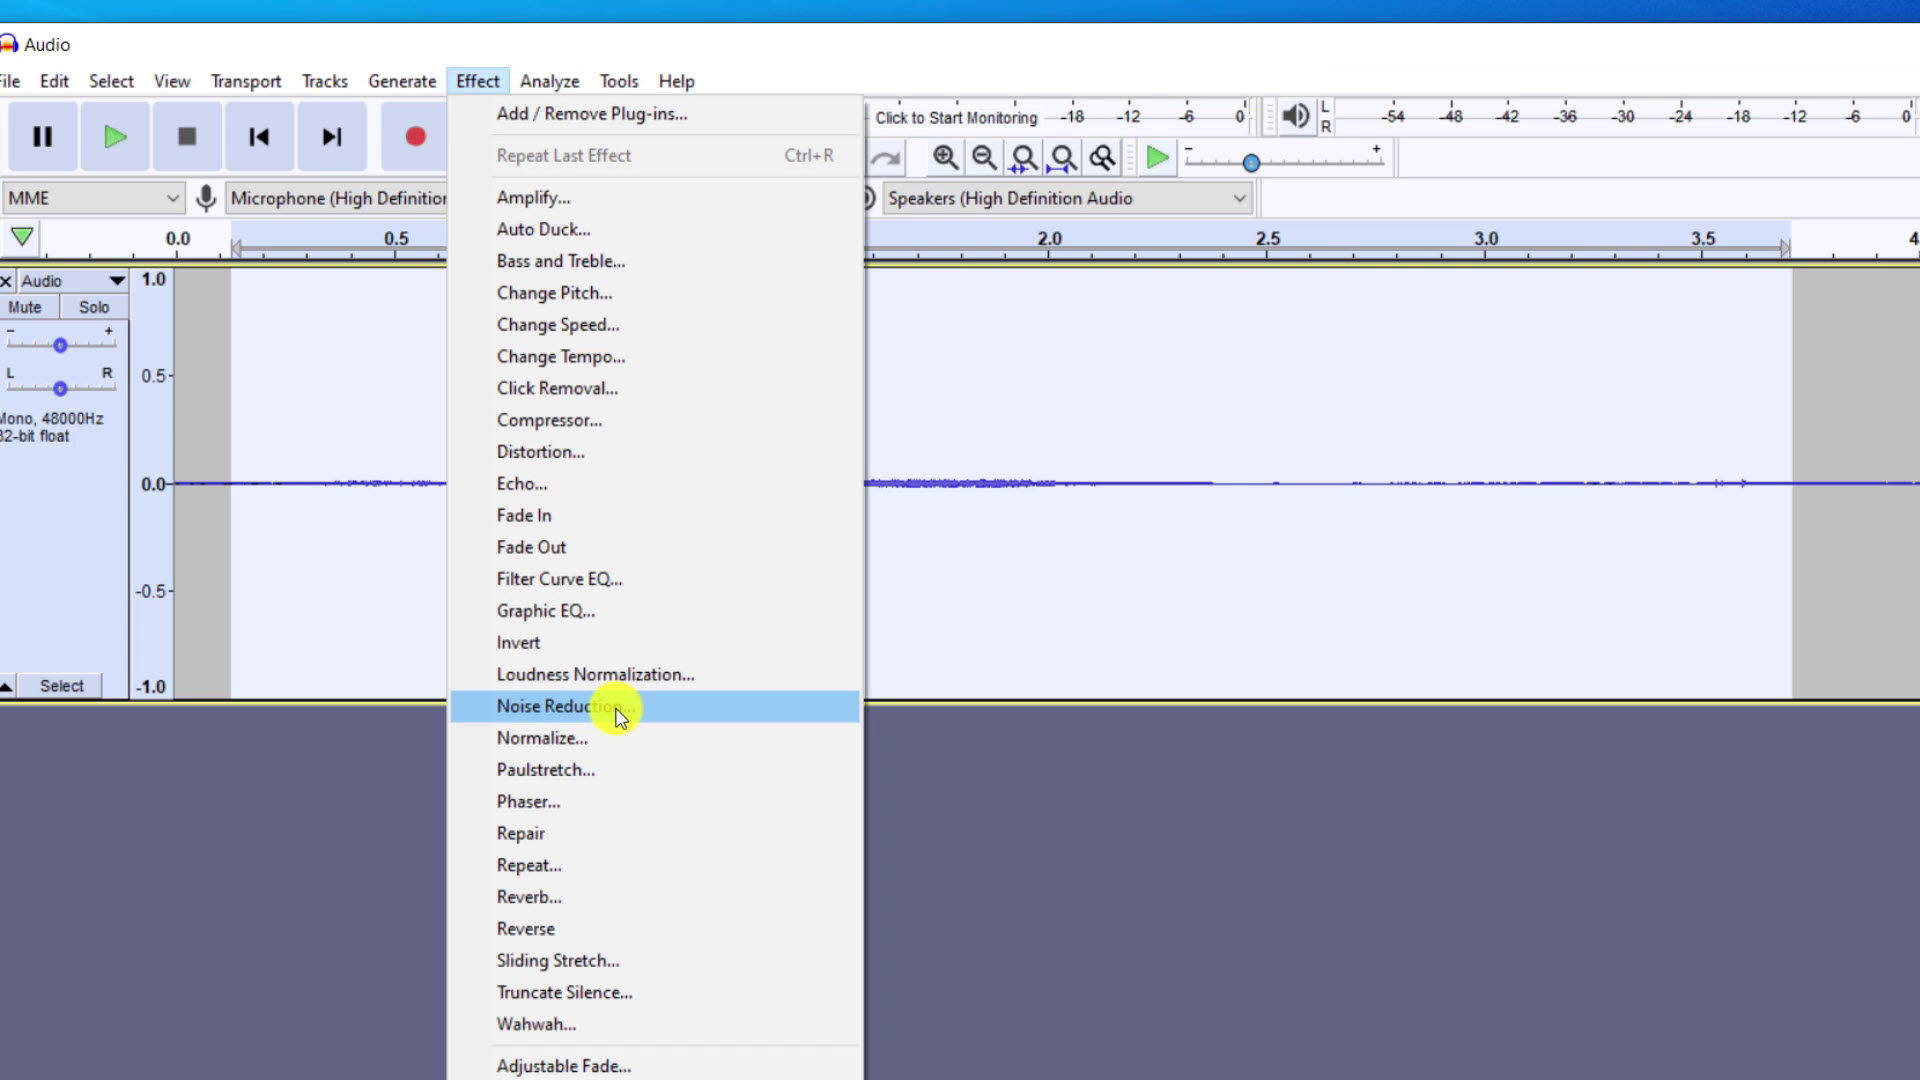 Noise Reduction in the Audacity Effects menu